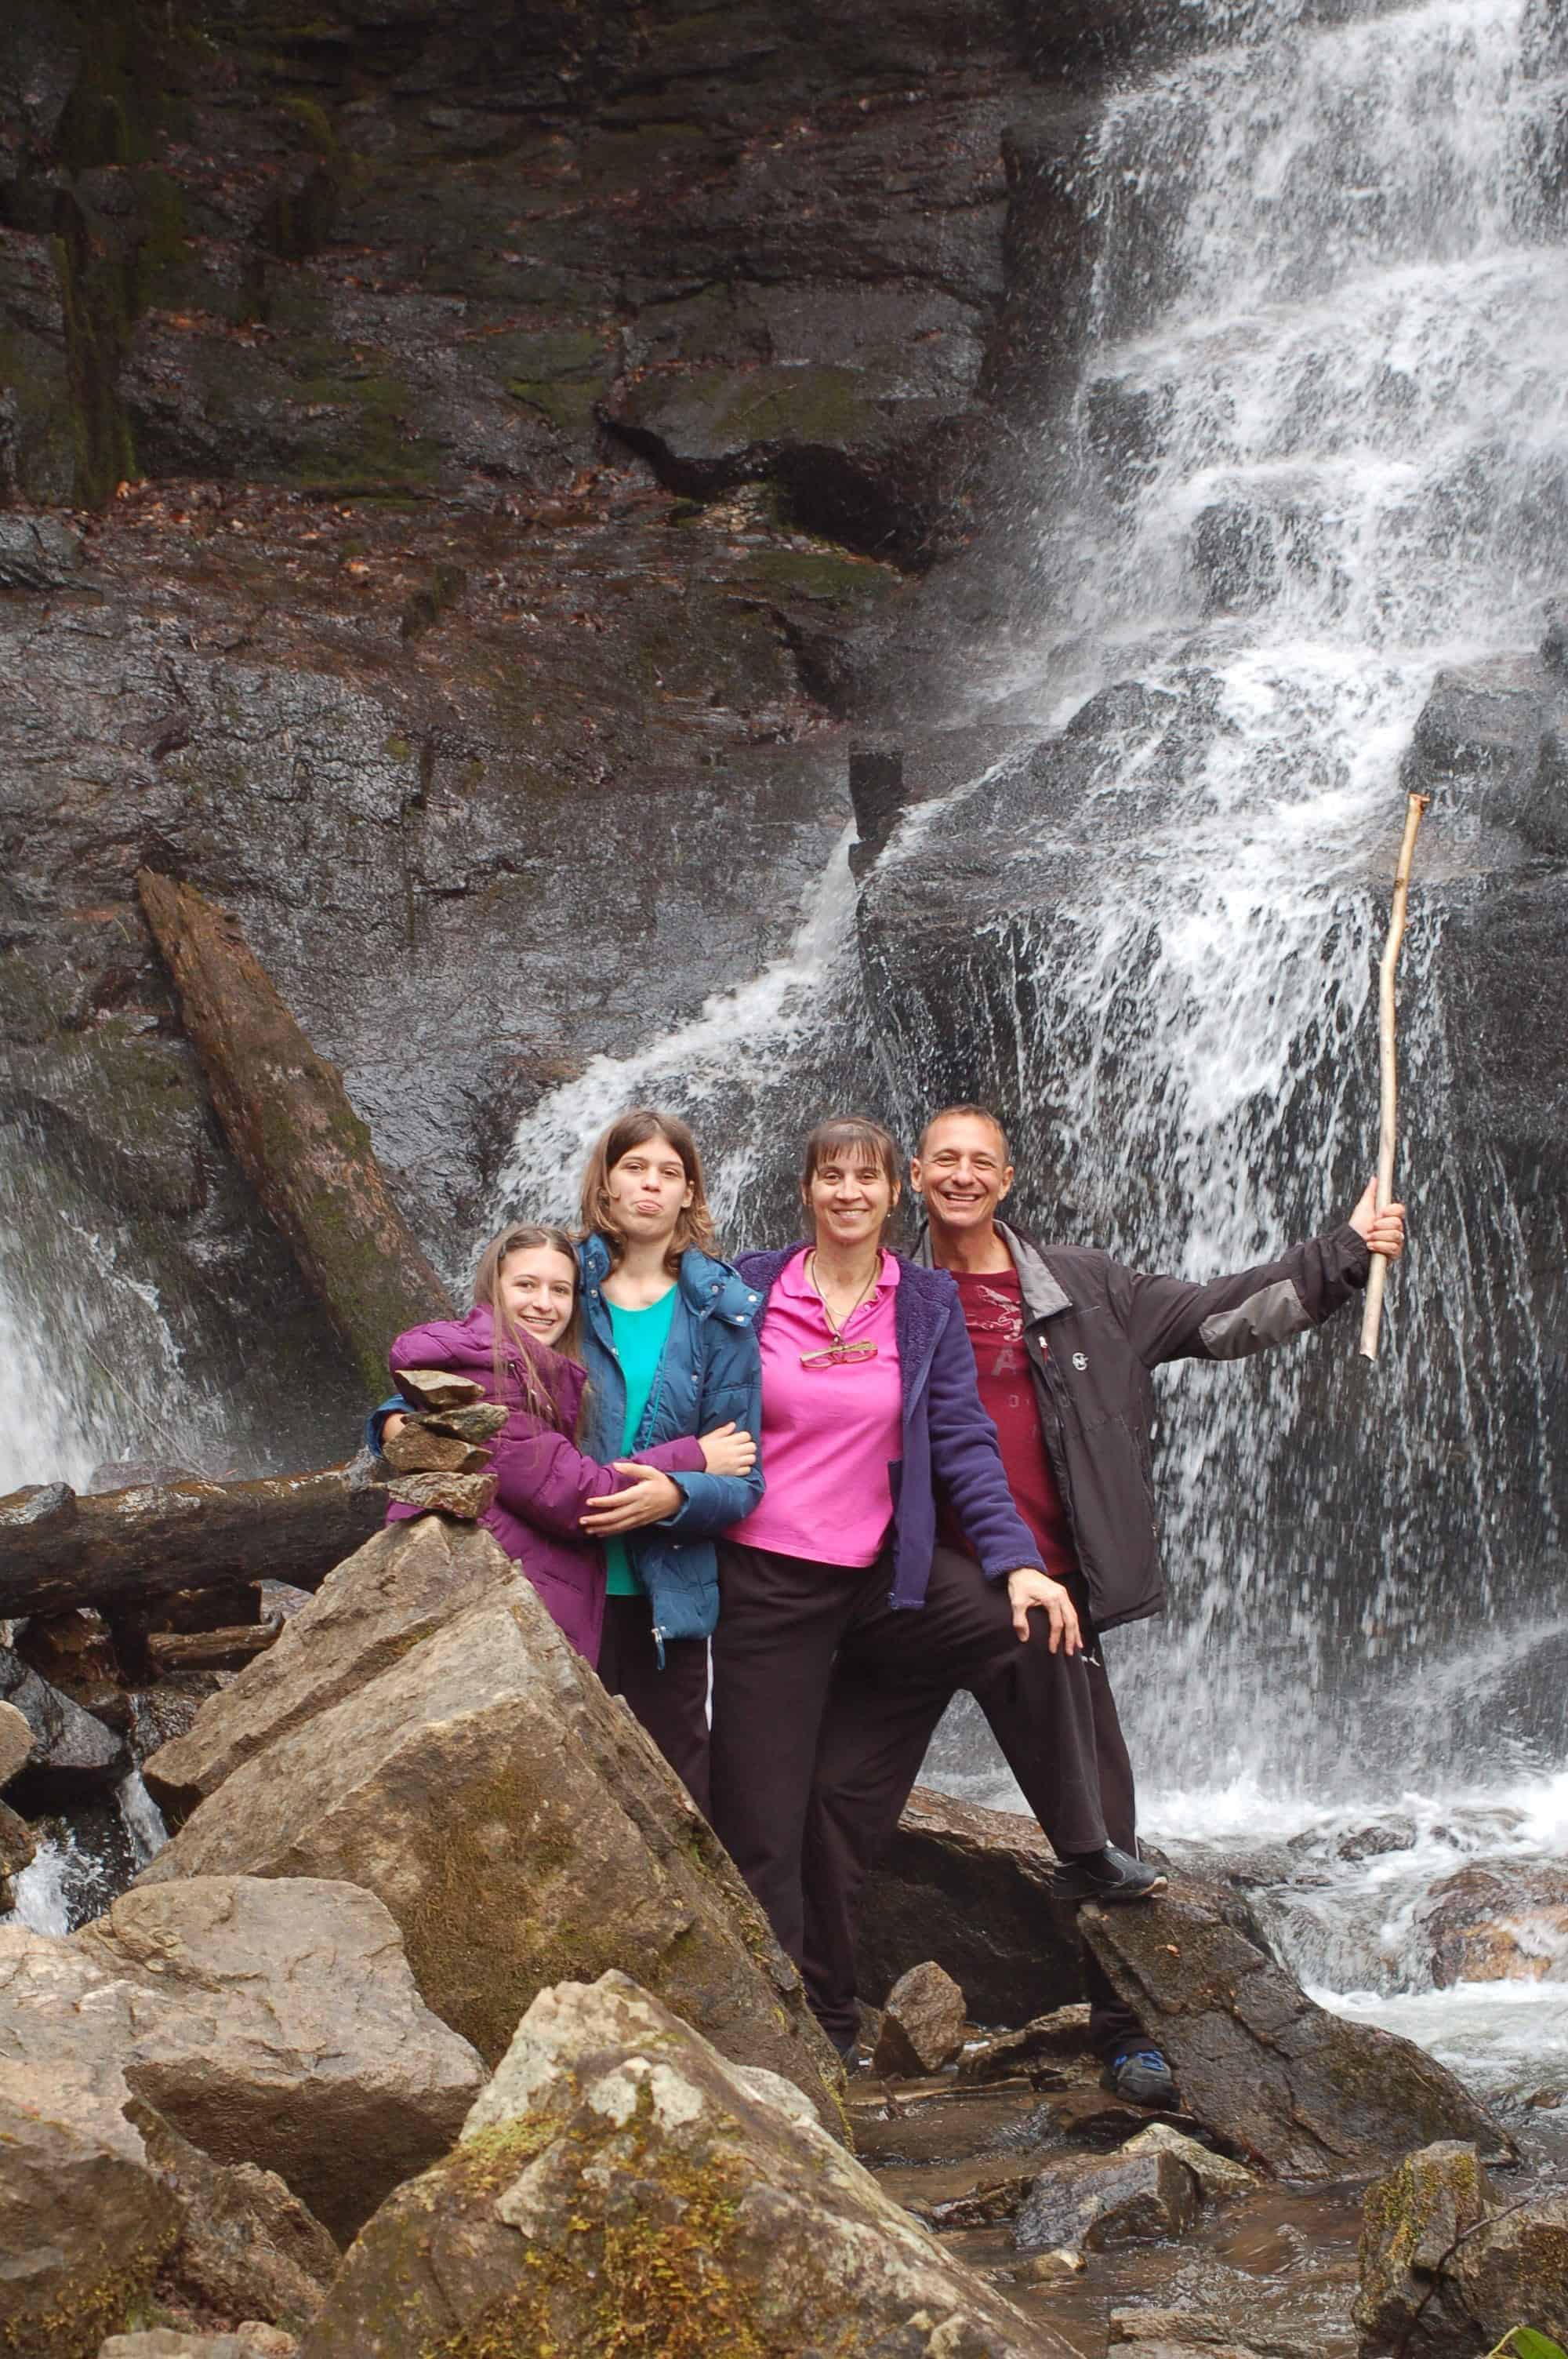 The Family at Soco Falls